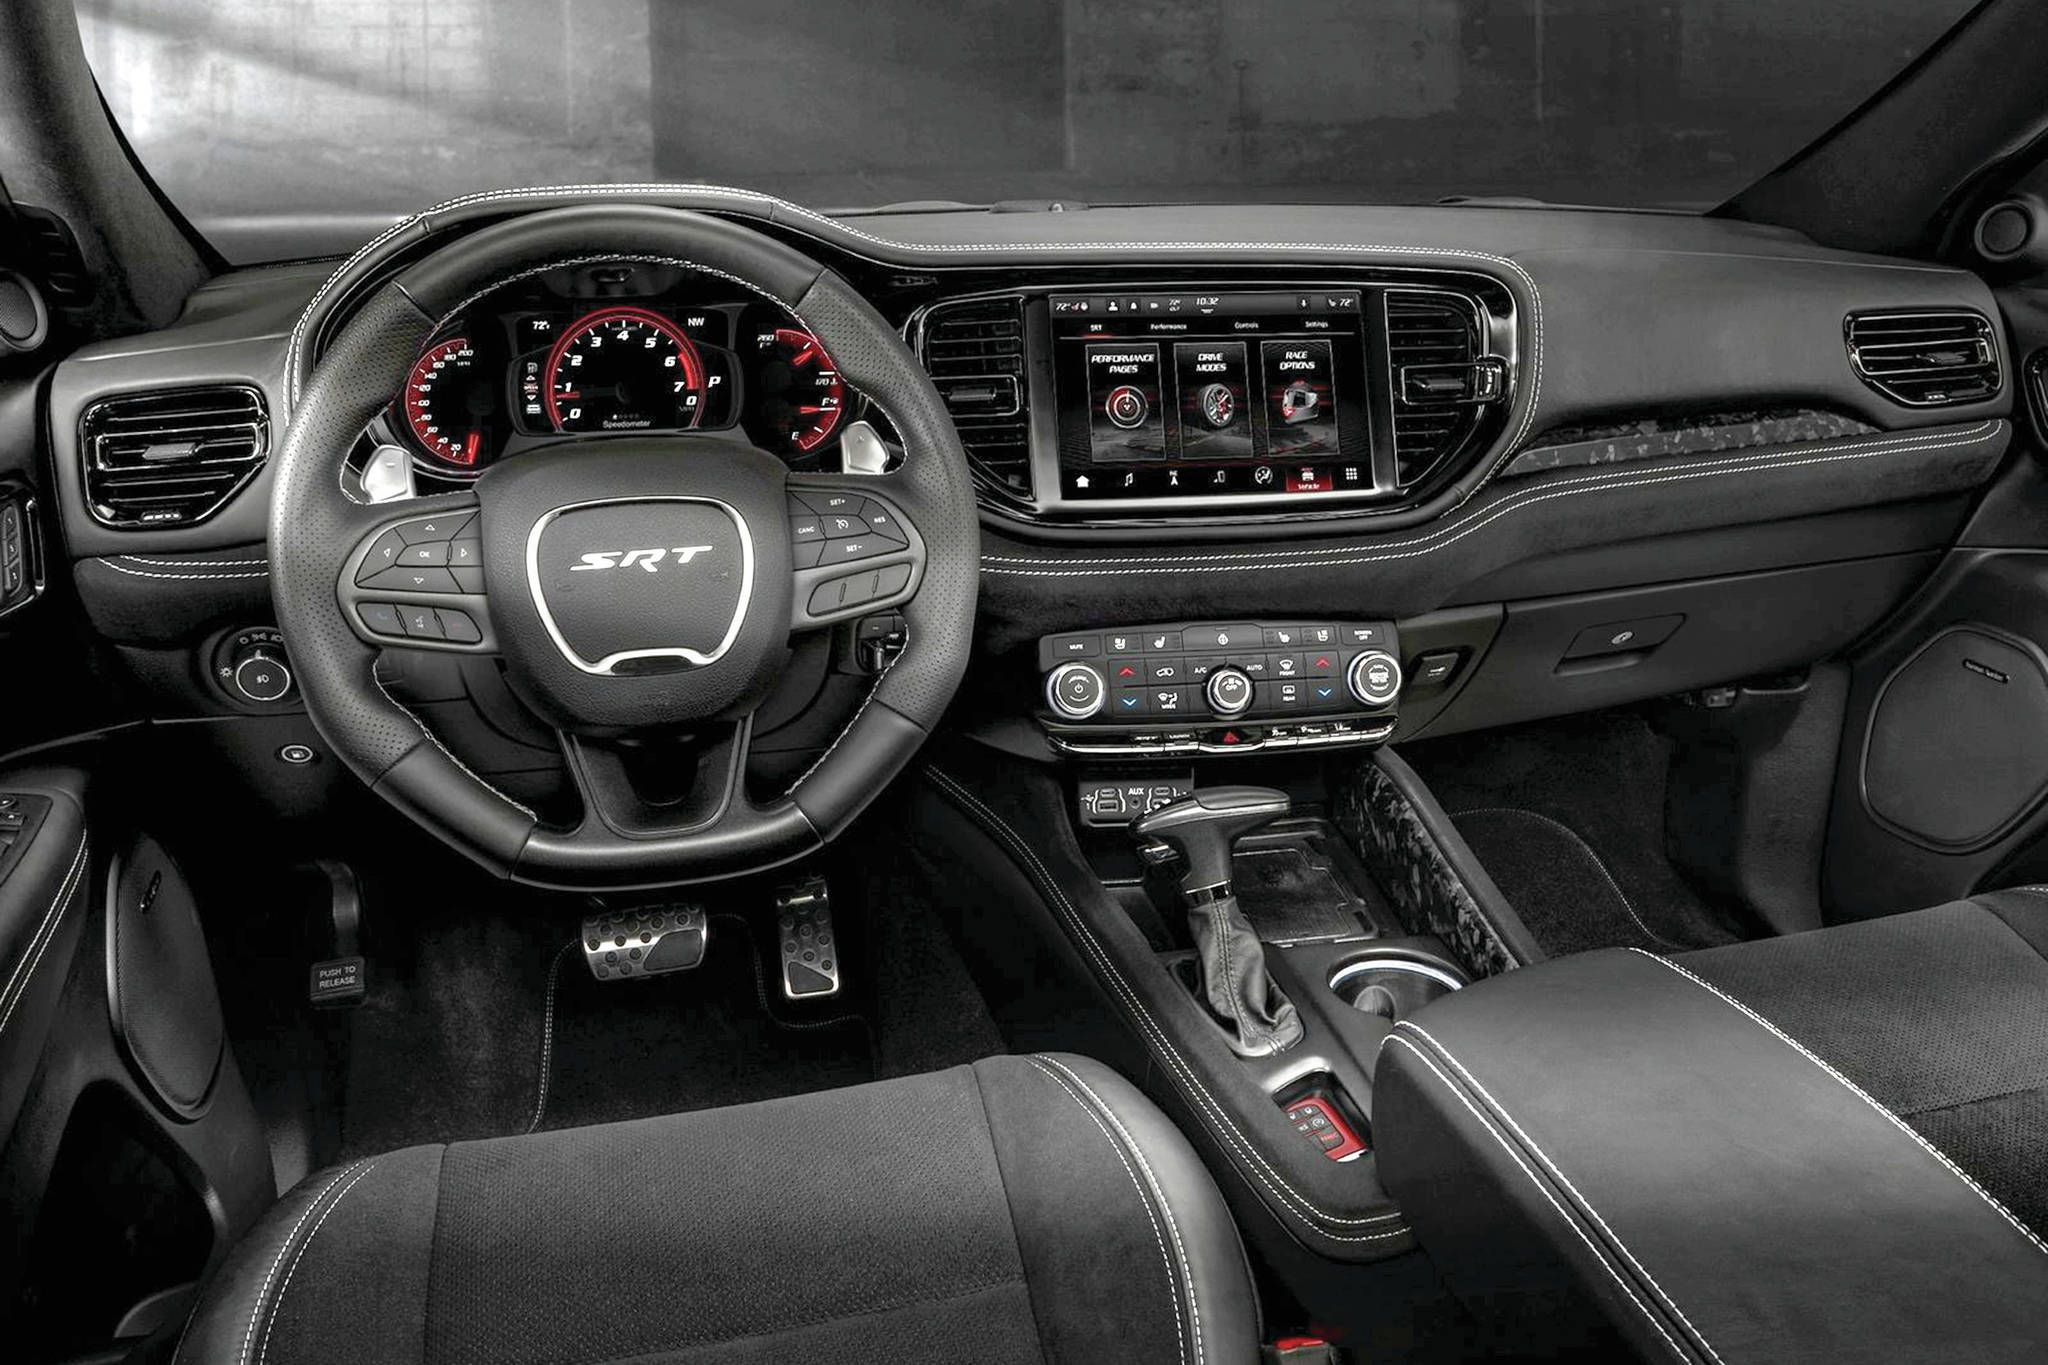 Dodge says the Durango's dash layout is driver-centric, like that of the Dodge Challenger, and that the Uconnect infotainment system is five times faster. Note the available 10.1-inch screen. PHOTO: DODGE